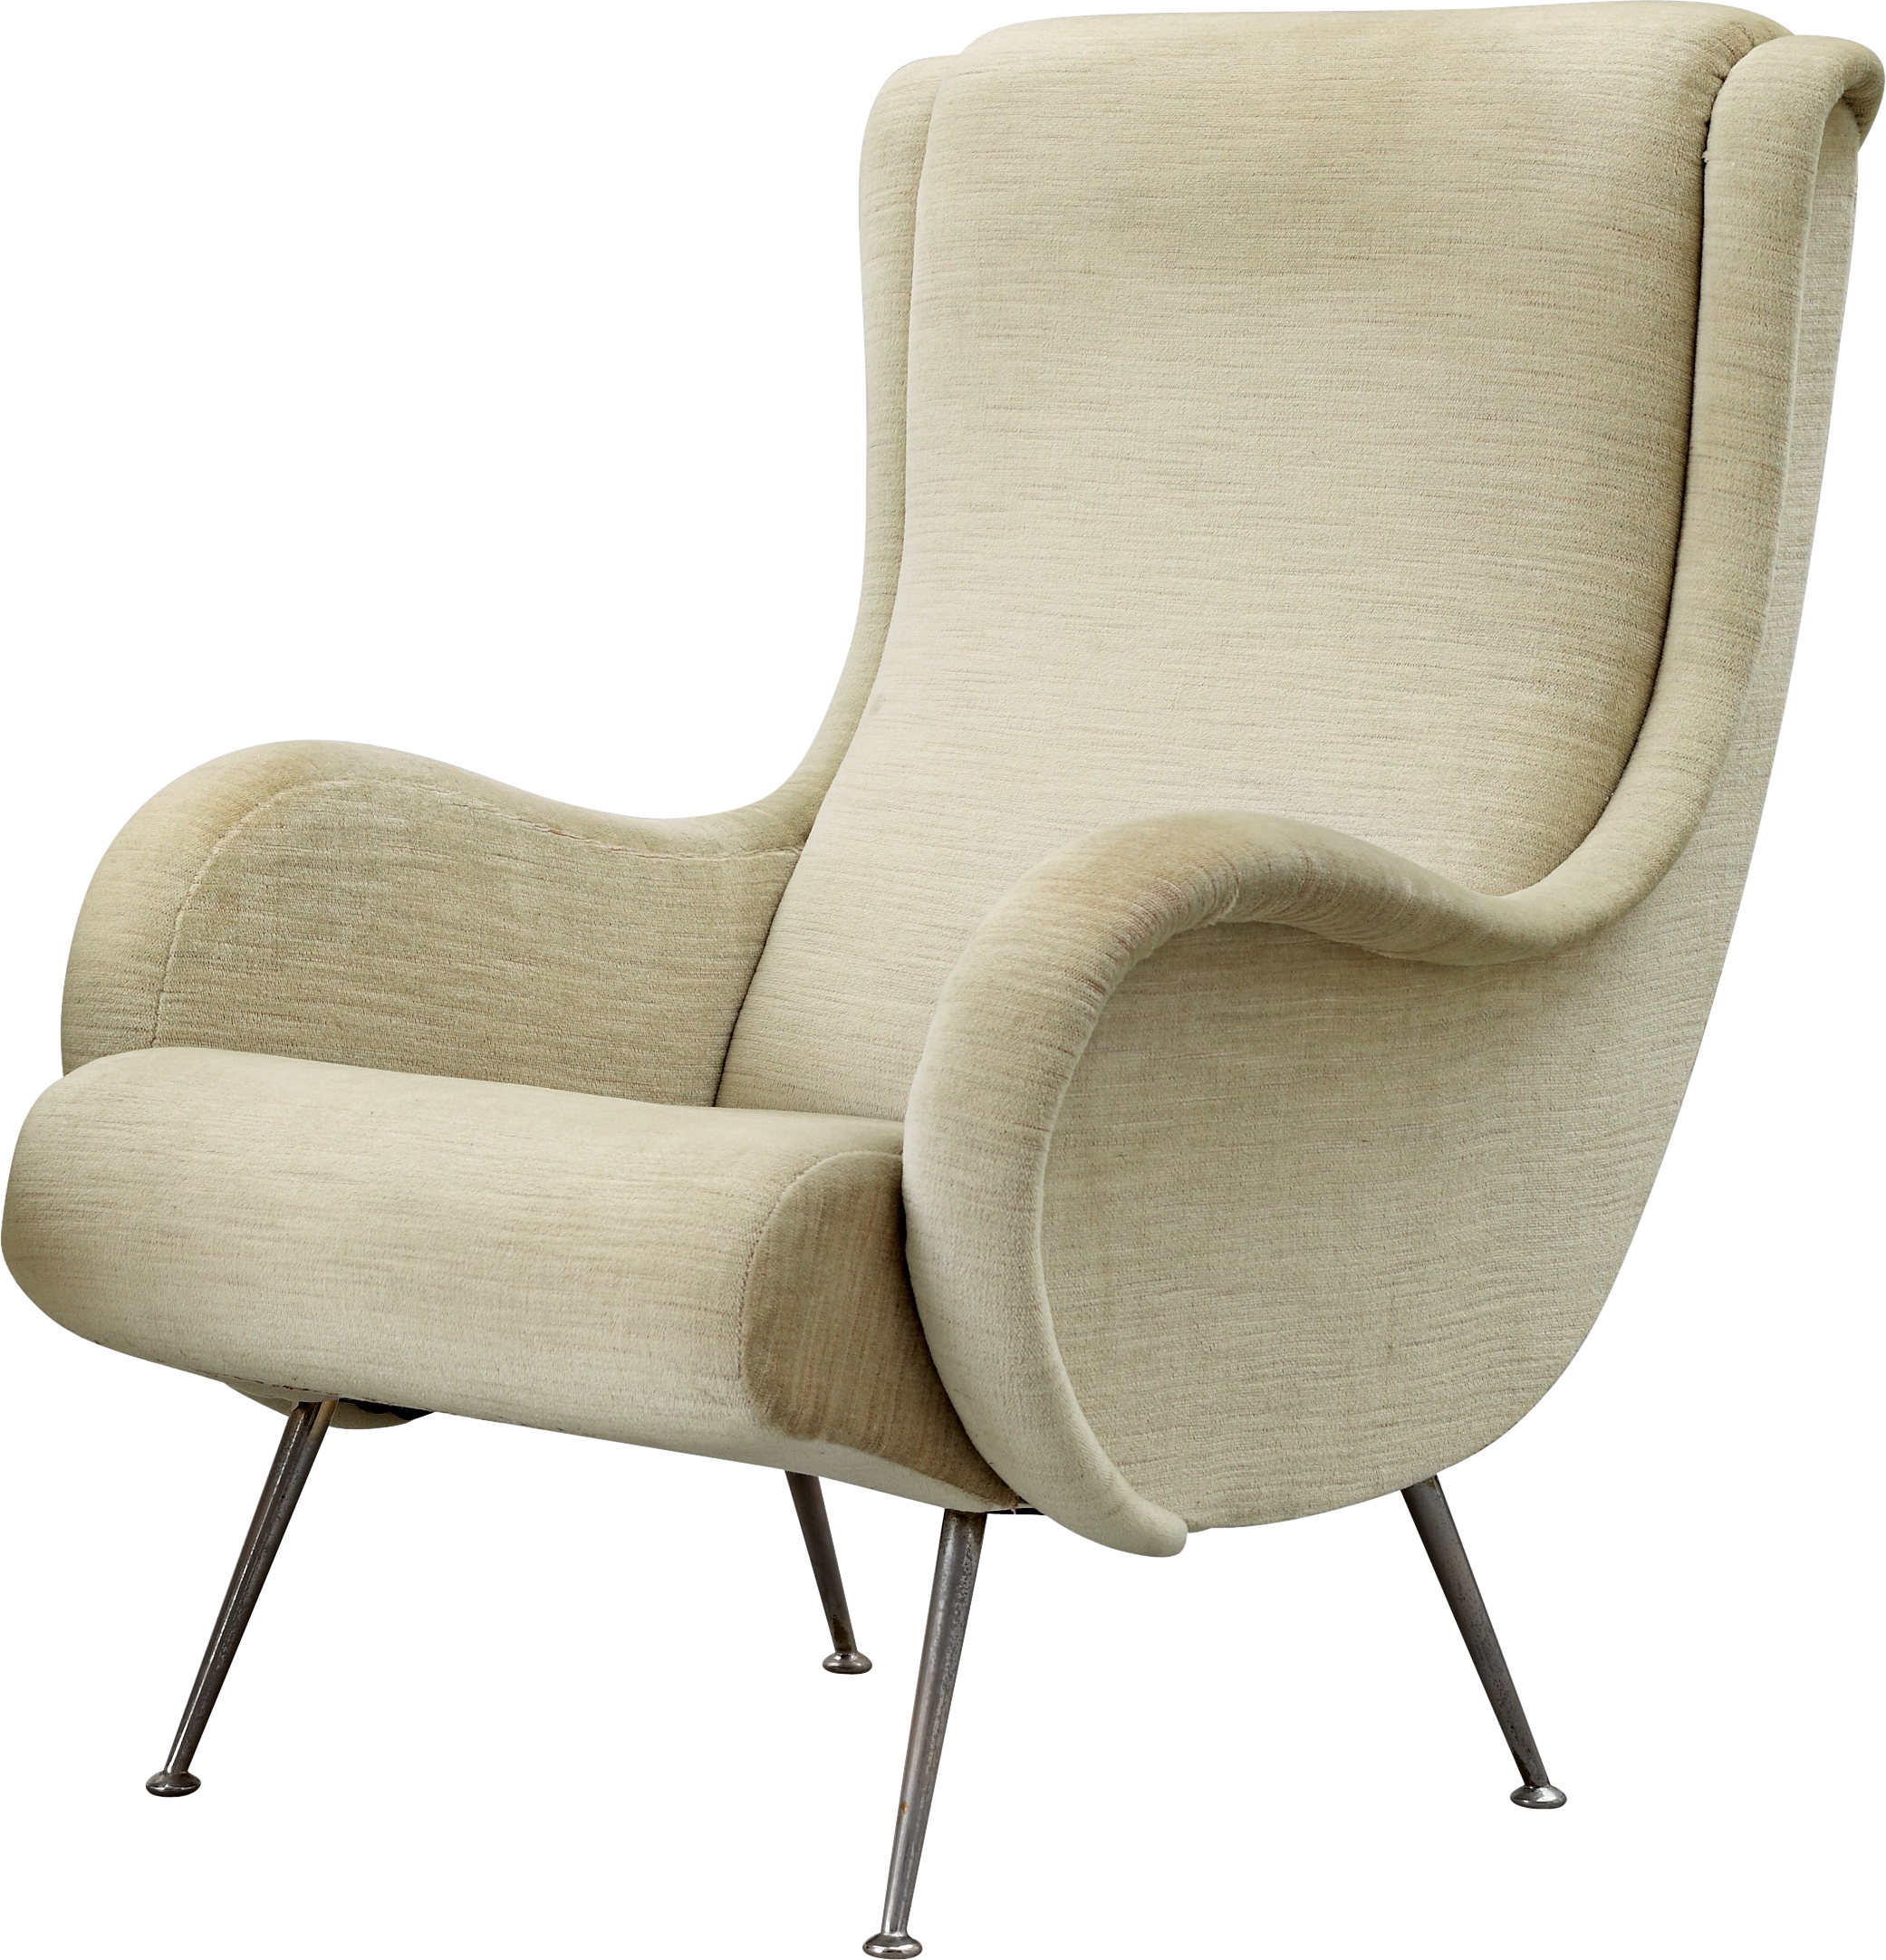 Armchair Png Images Free Downlofd Armchairs Png